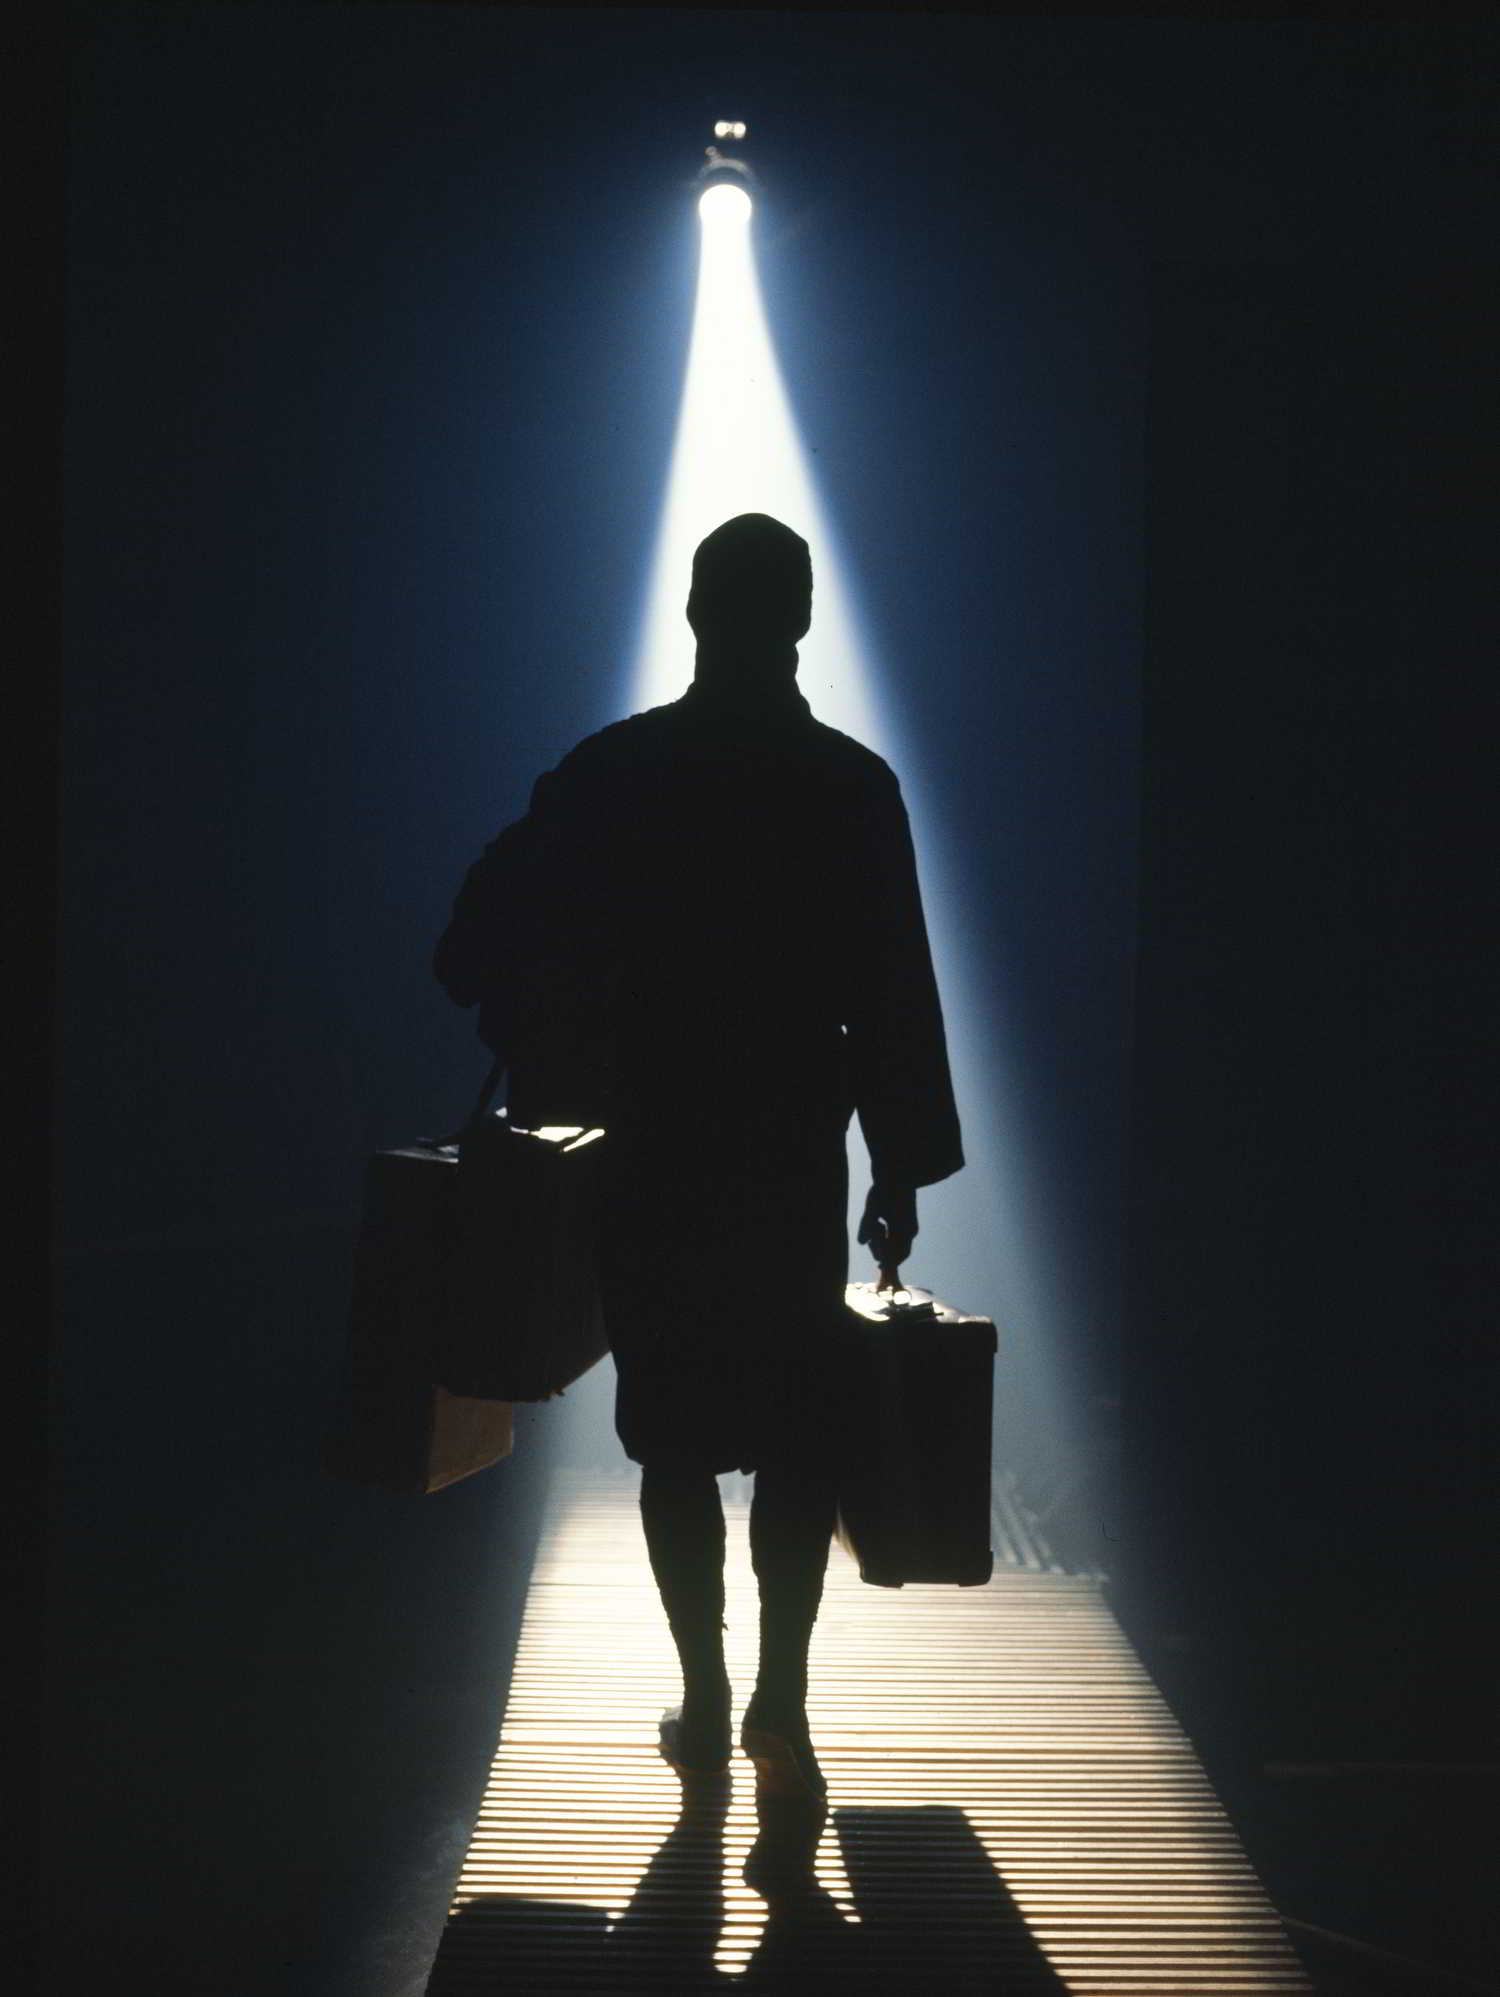 Secrets Handspan Theatre man carrying two suitcases, silhouetted against a shaft of light